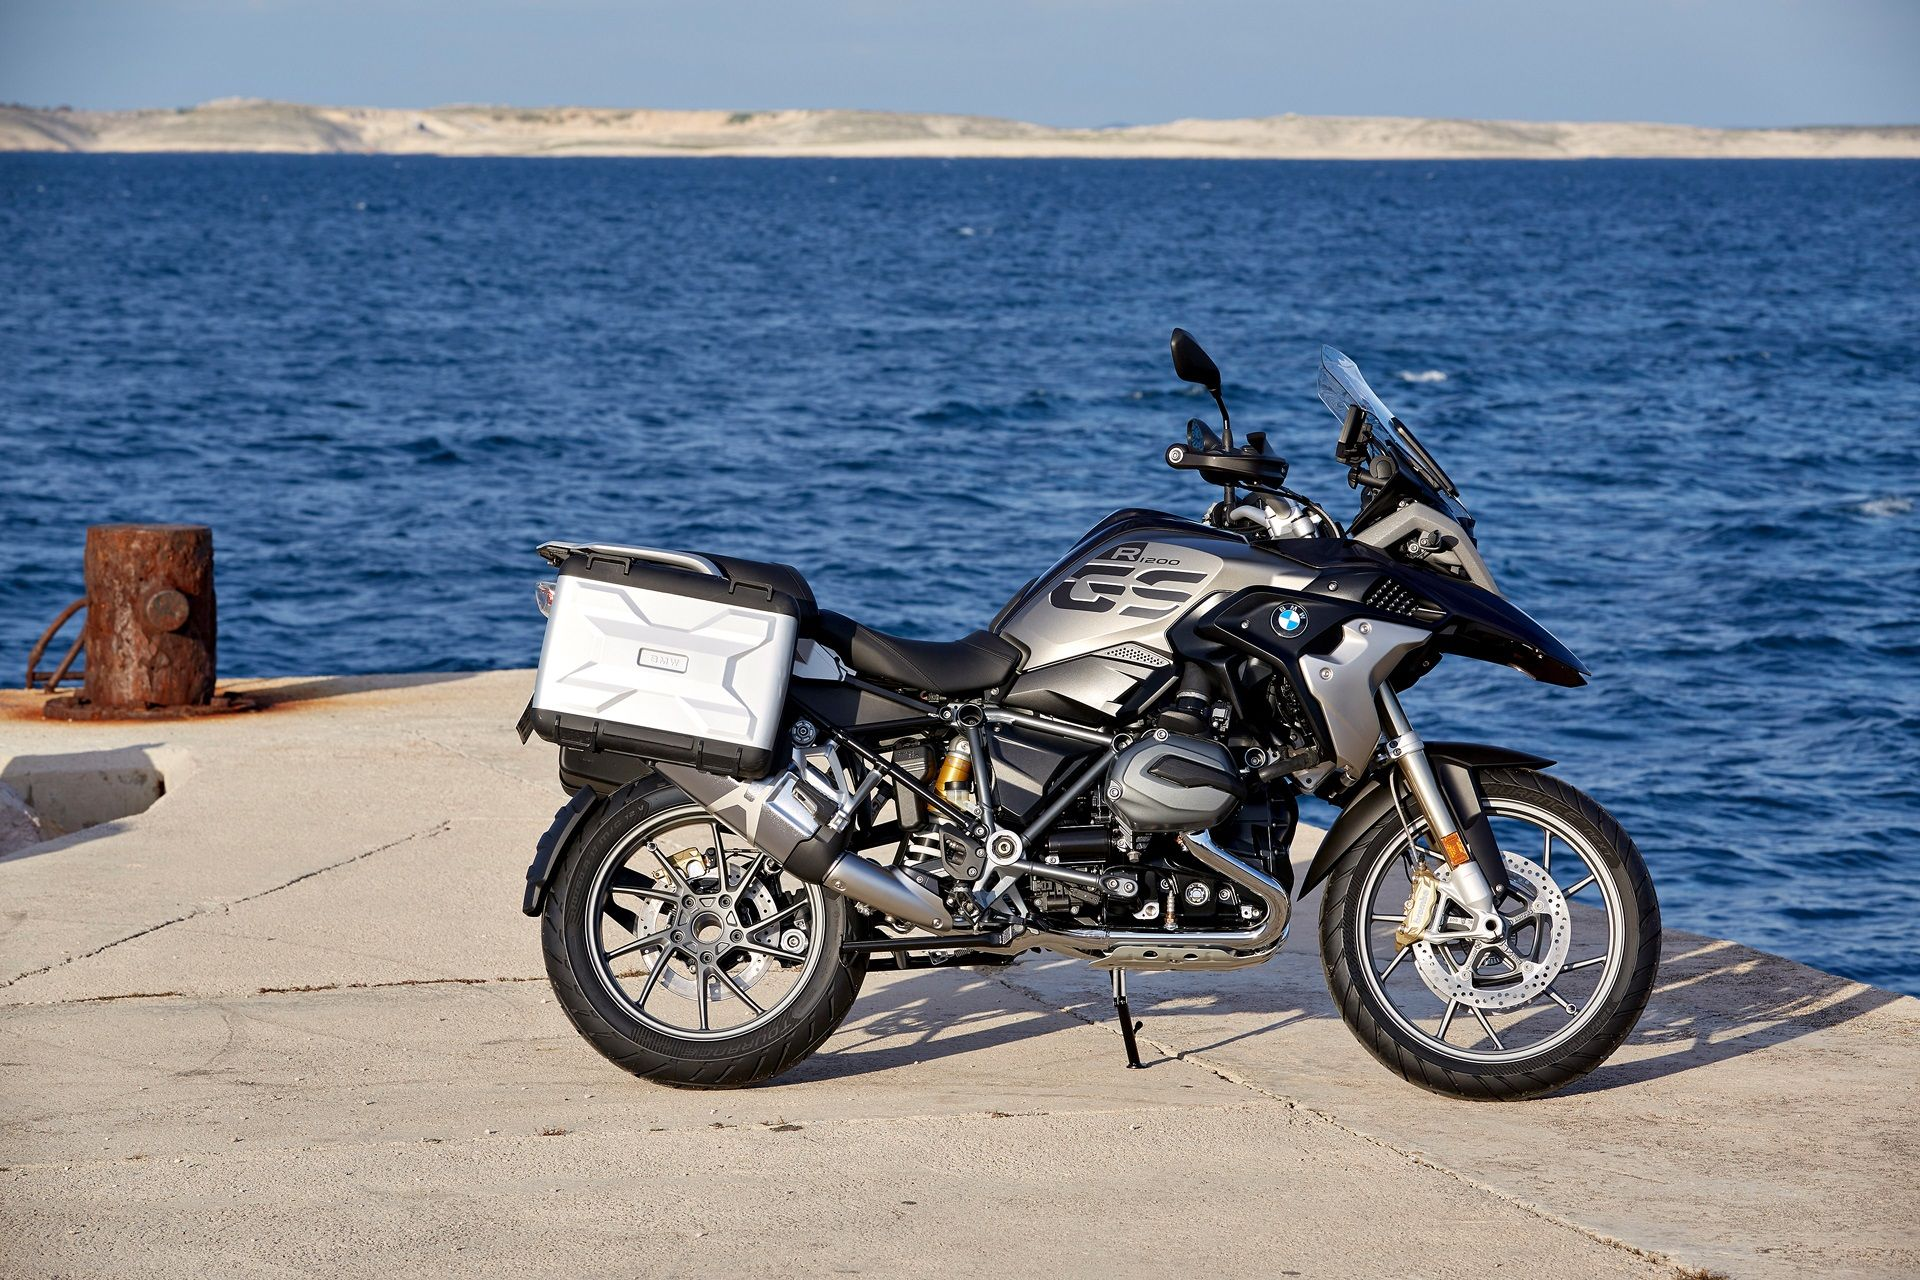 Bmw R 1200 Gs Exclusive 2017 Wallpaper 1007 2017 Motorcycles Bmw Adventure Bike Red Wallpaper